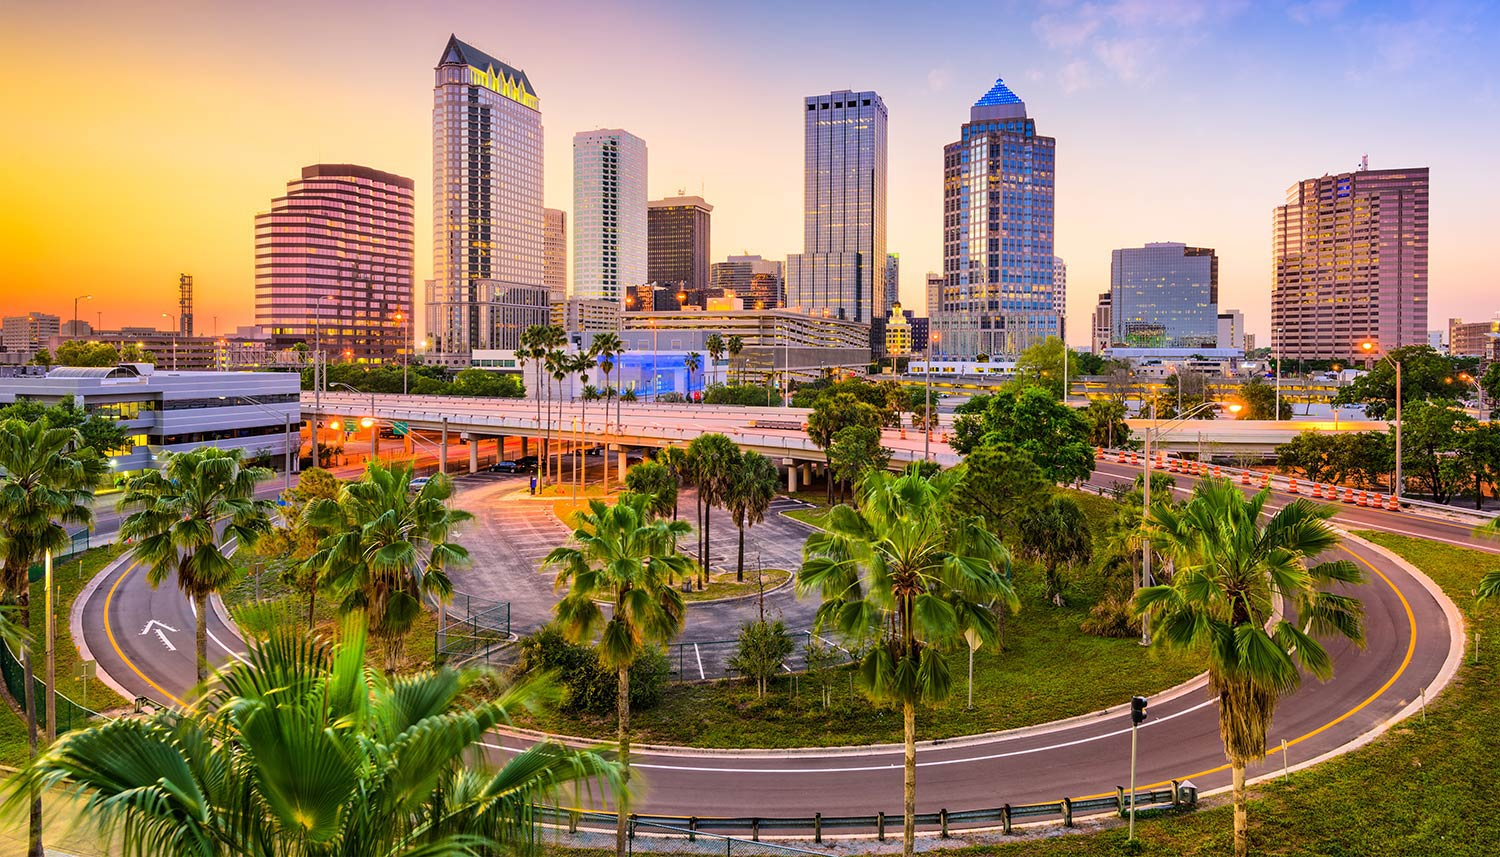 A curbed road surrounded by palm trees in downtown Tampa at sunrise